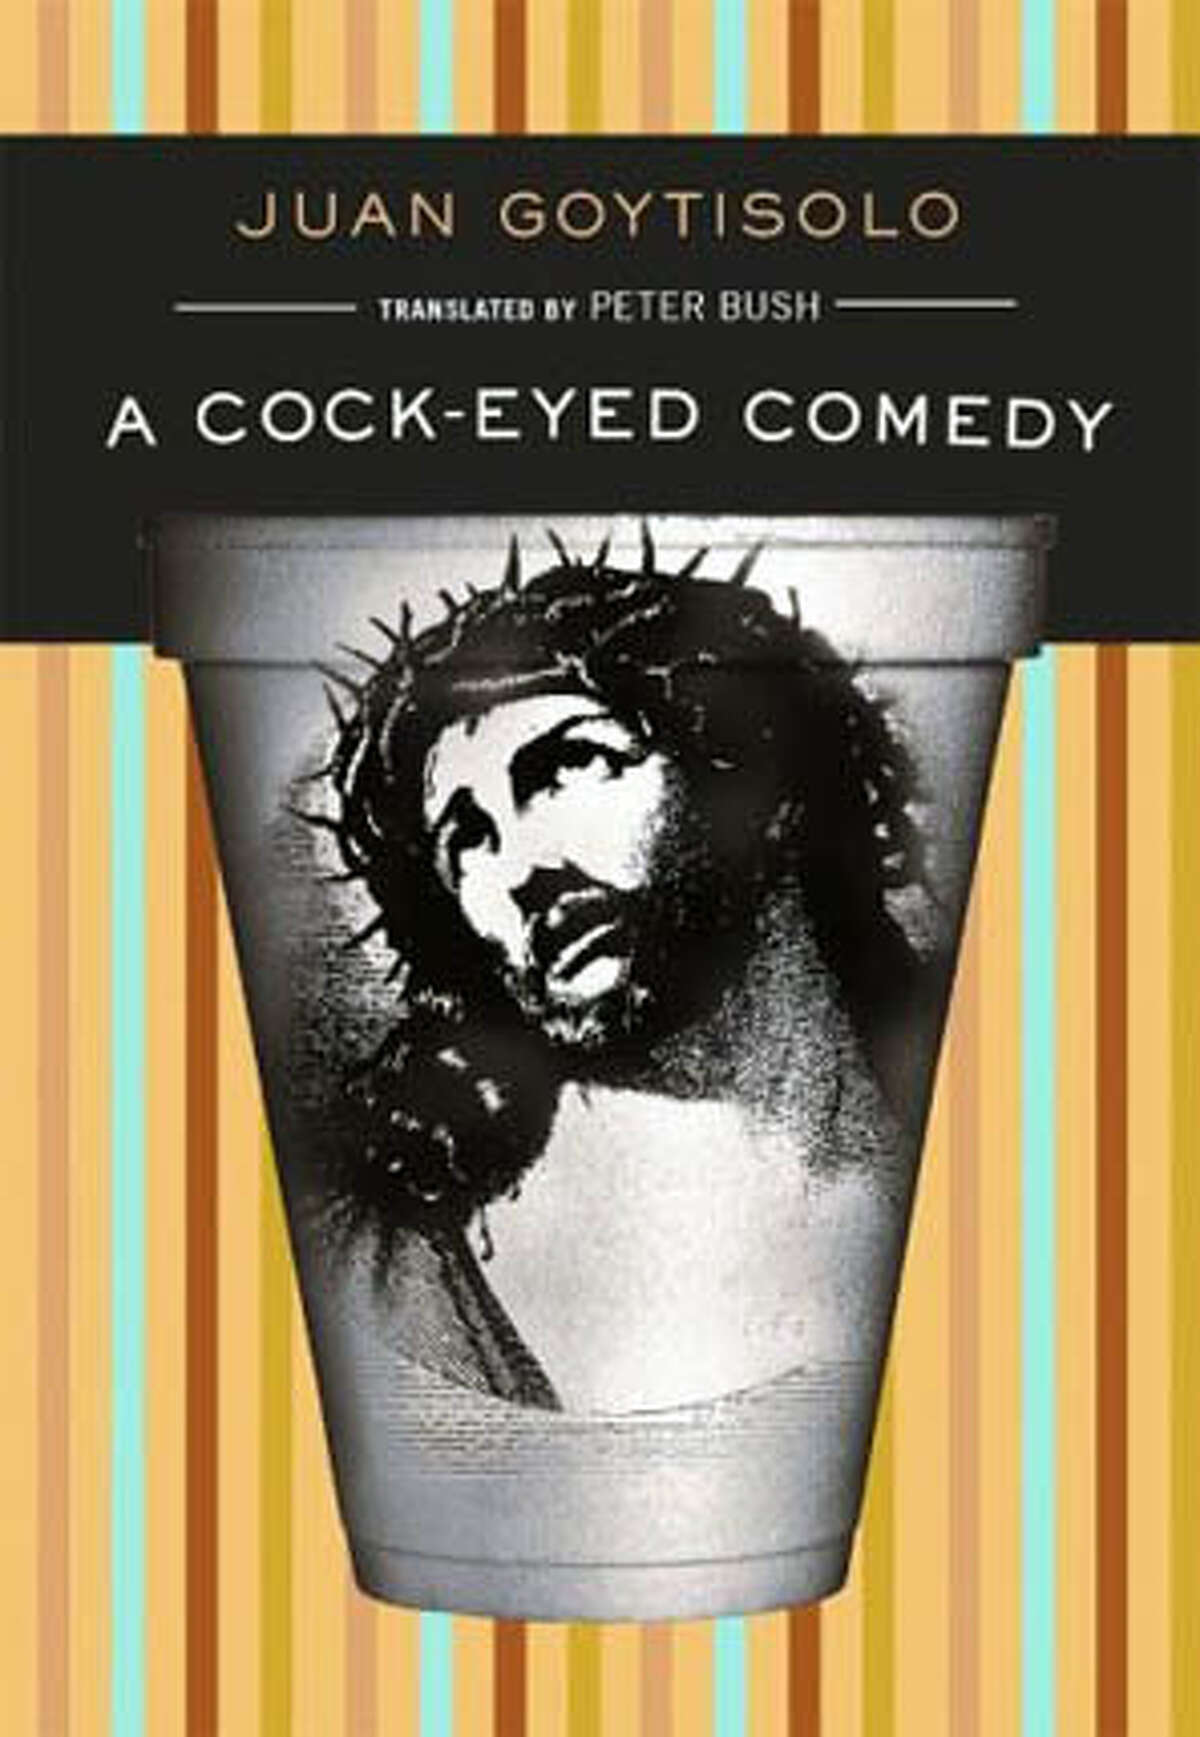 """""""A Cock-Eyed Comedy,"""" by Juan Goytisolo; translated by Peter Bush (City Lights Books; 173 pages; $13.95 paperback)."""